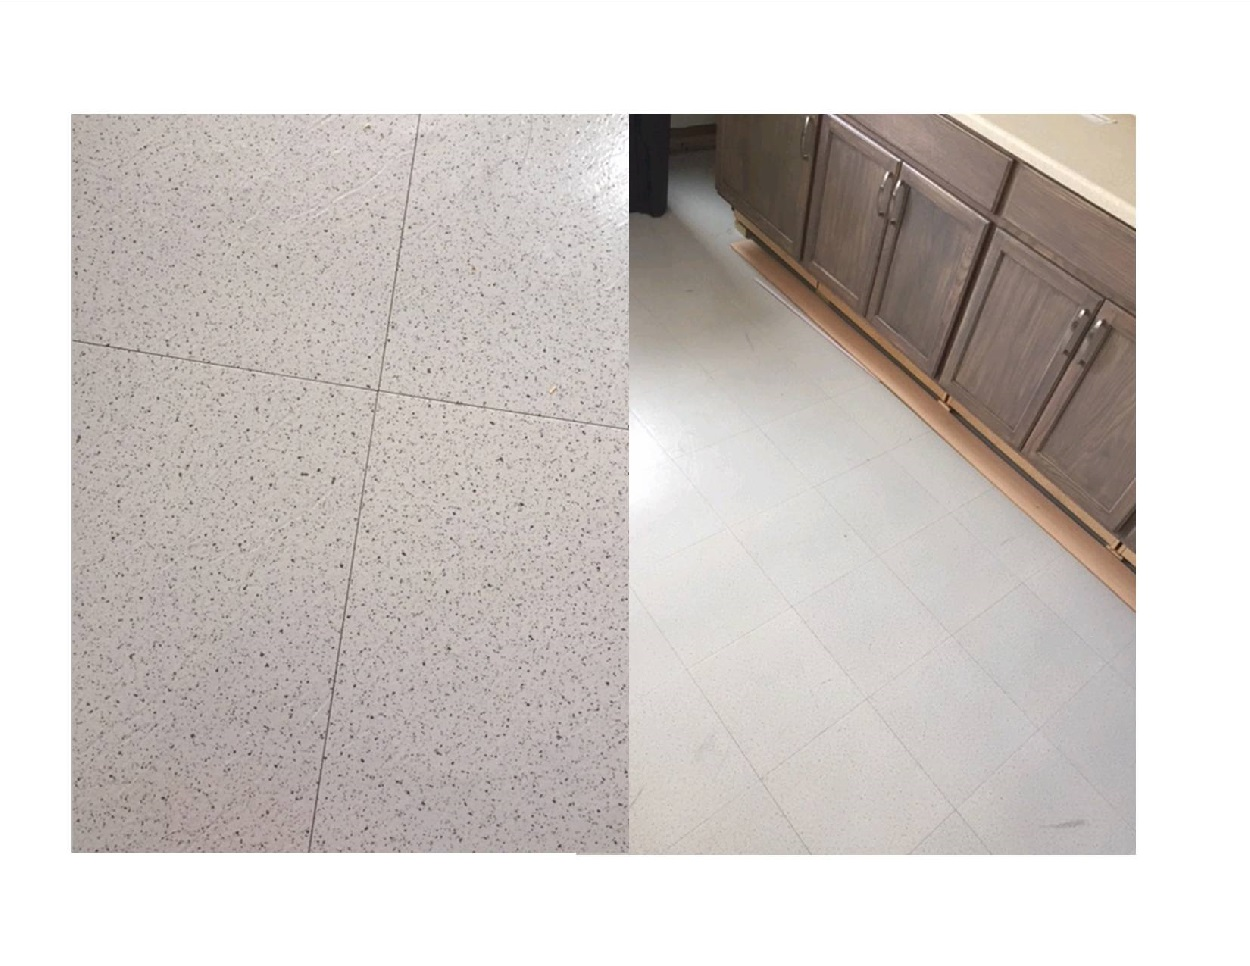 Salt & Pepper Garage Floor Tile